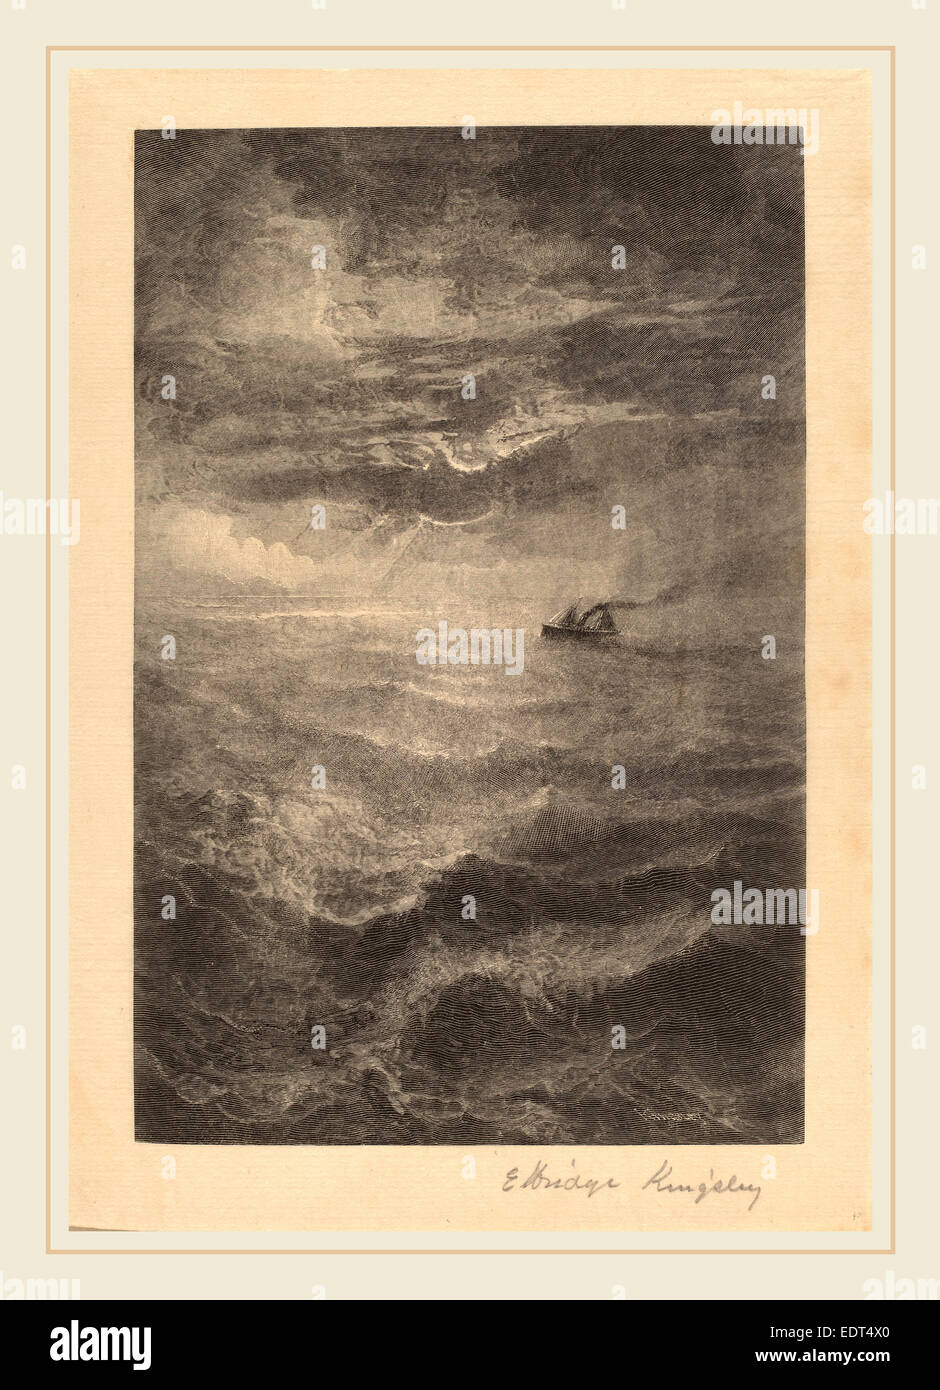 Elbridge Kingsley, At Sea, American, 1842-1918, c. 1883, wood engraving - Stock Image